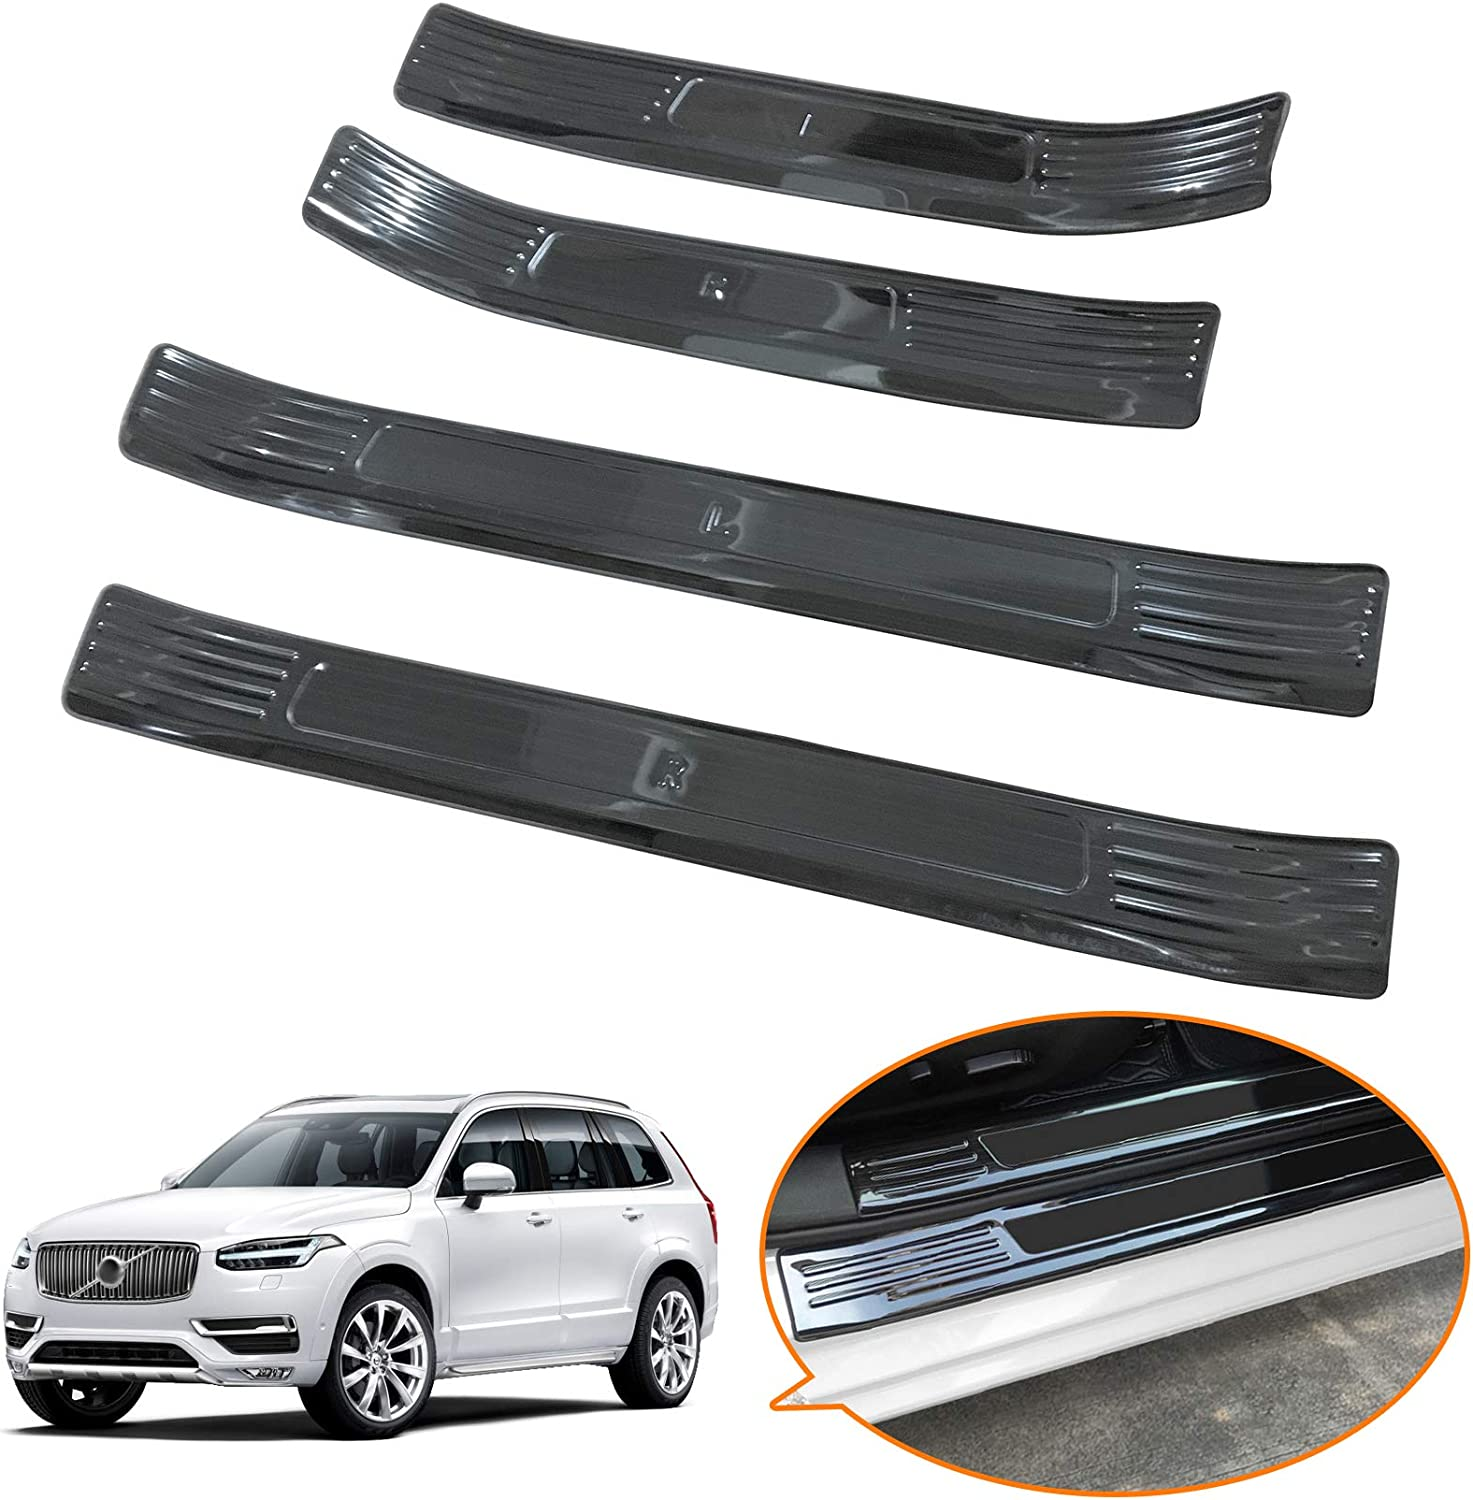 Toryea Outer 4PCS Door Entry Guards Sill Plate Black Titanium Fit Honda CR-V 2017 2018 2019